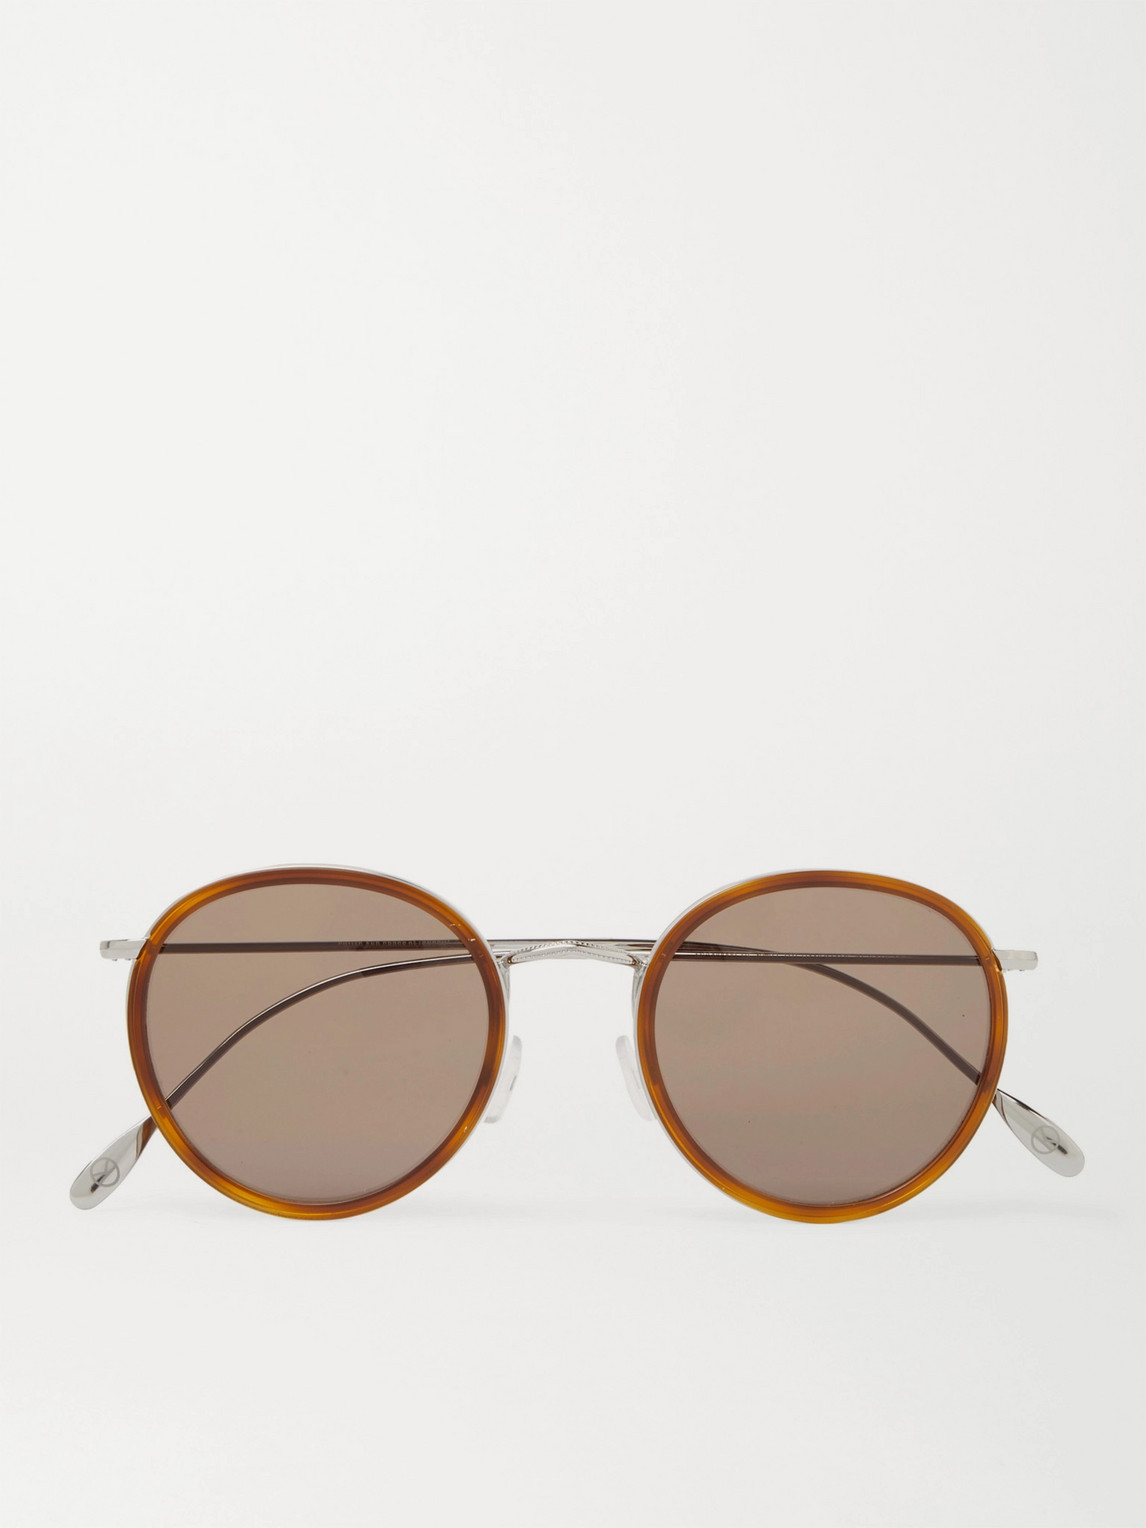 Kingsman Cutler And Gross Round-frame Acetate And Silver-tone Sunglasses In Brown